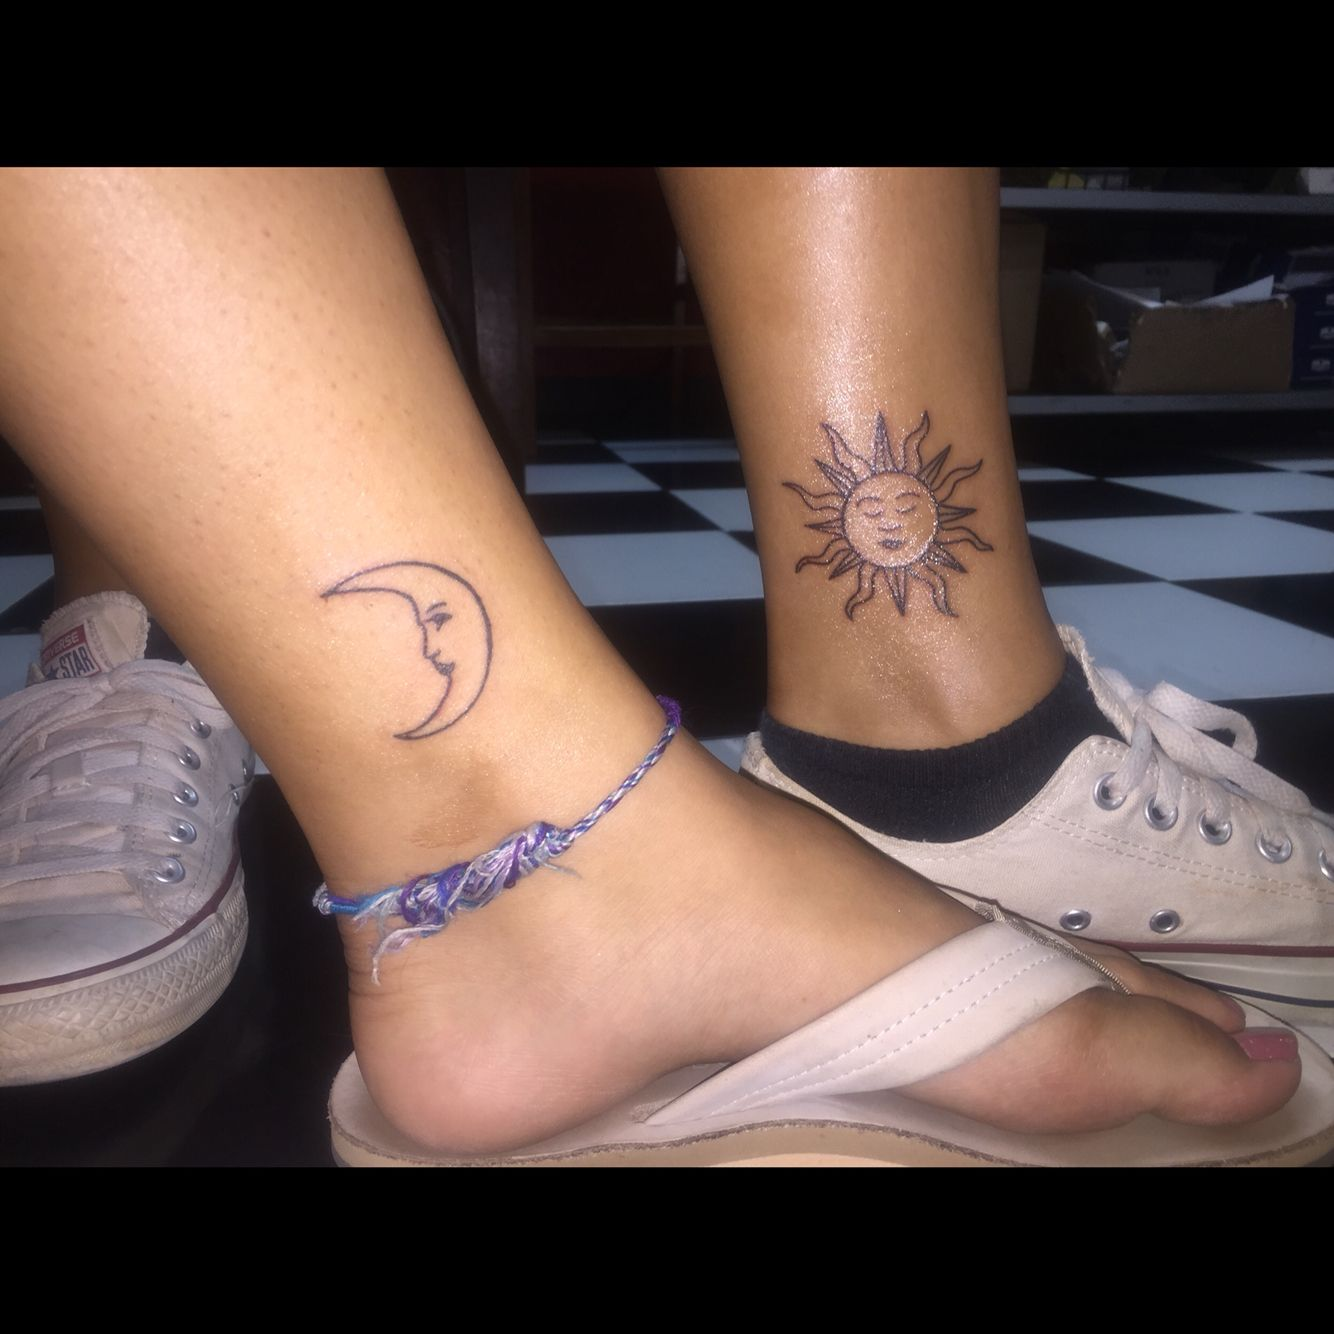 Sun And Moon Matching Tattoos Inside Left Leg Just Above The Ankle